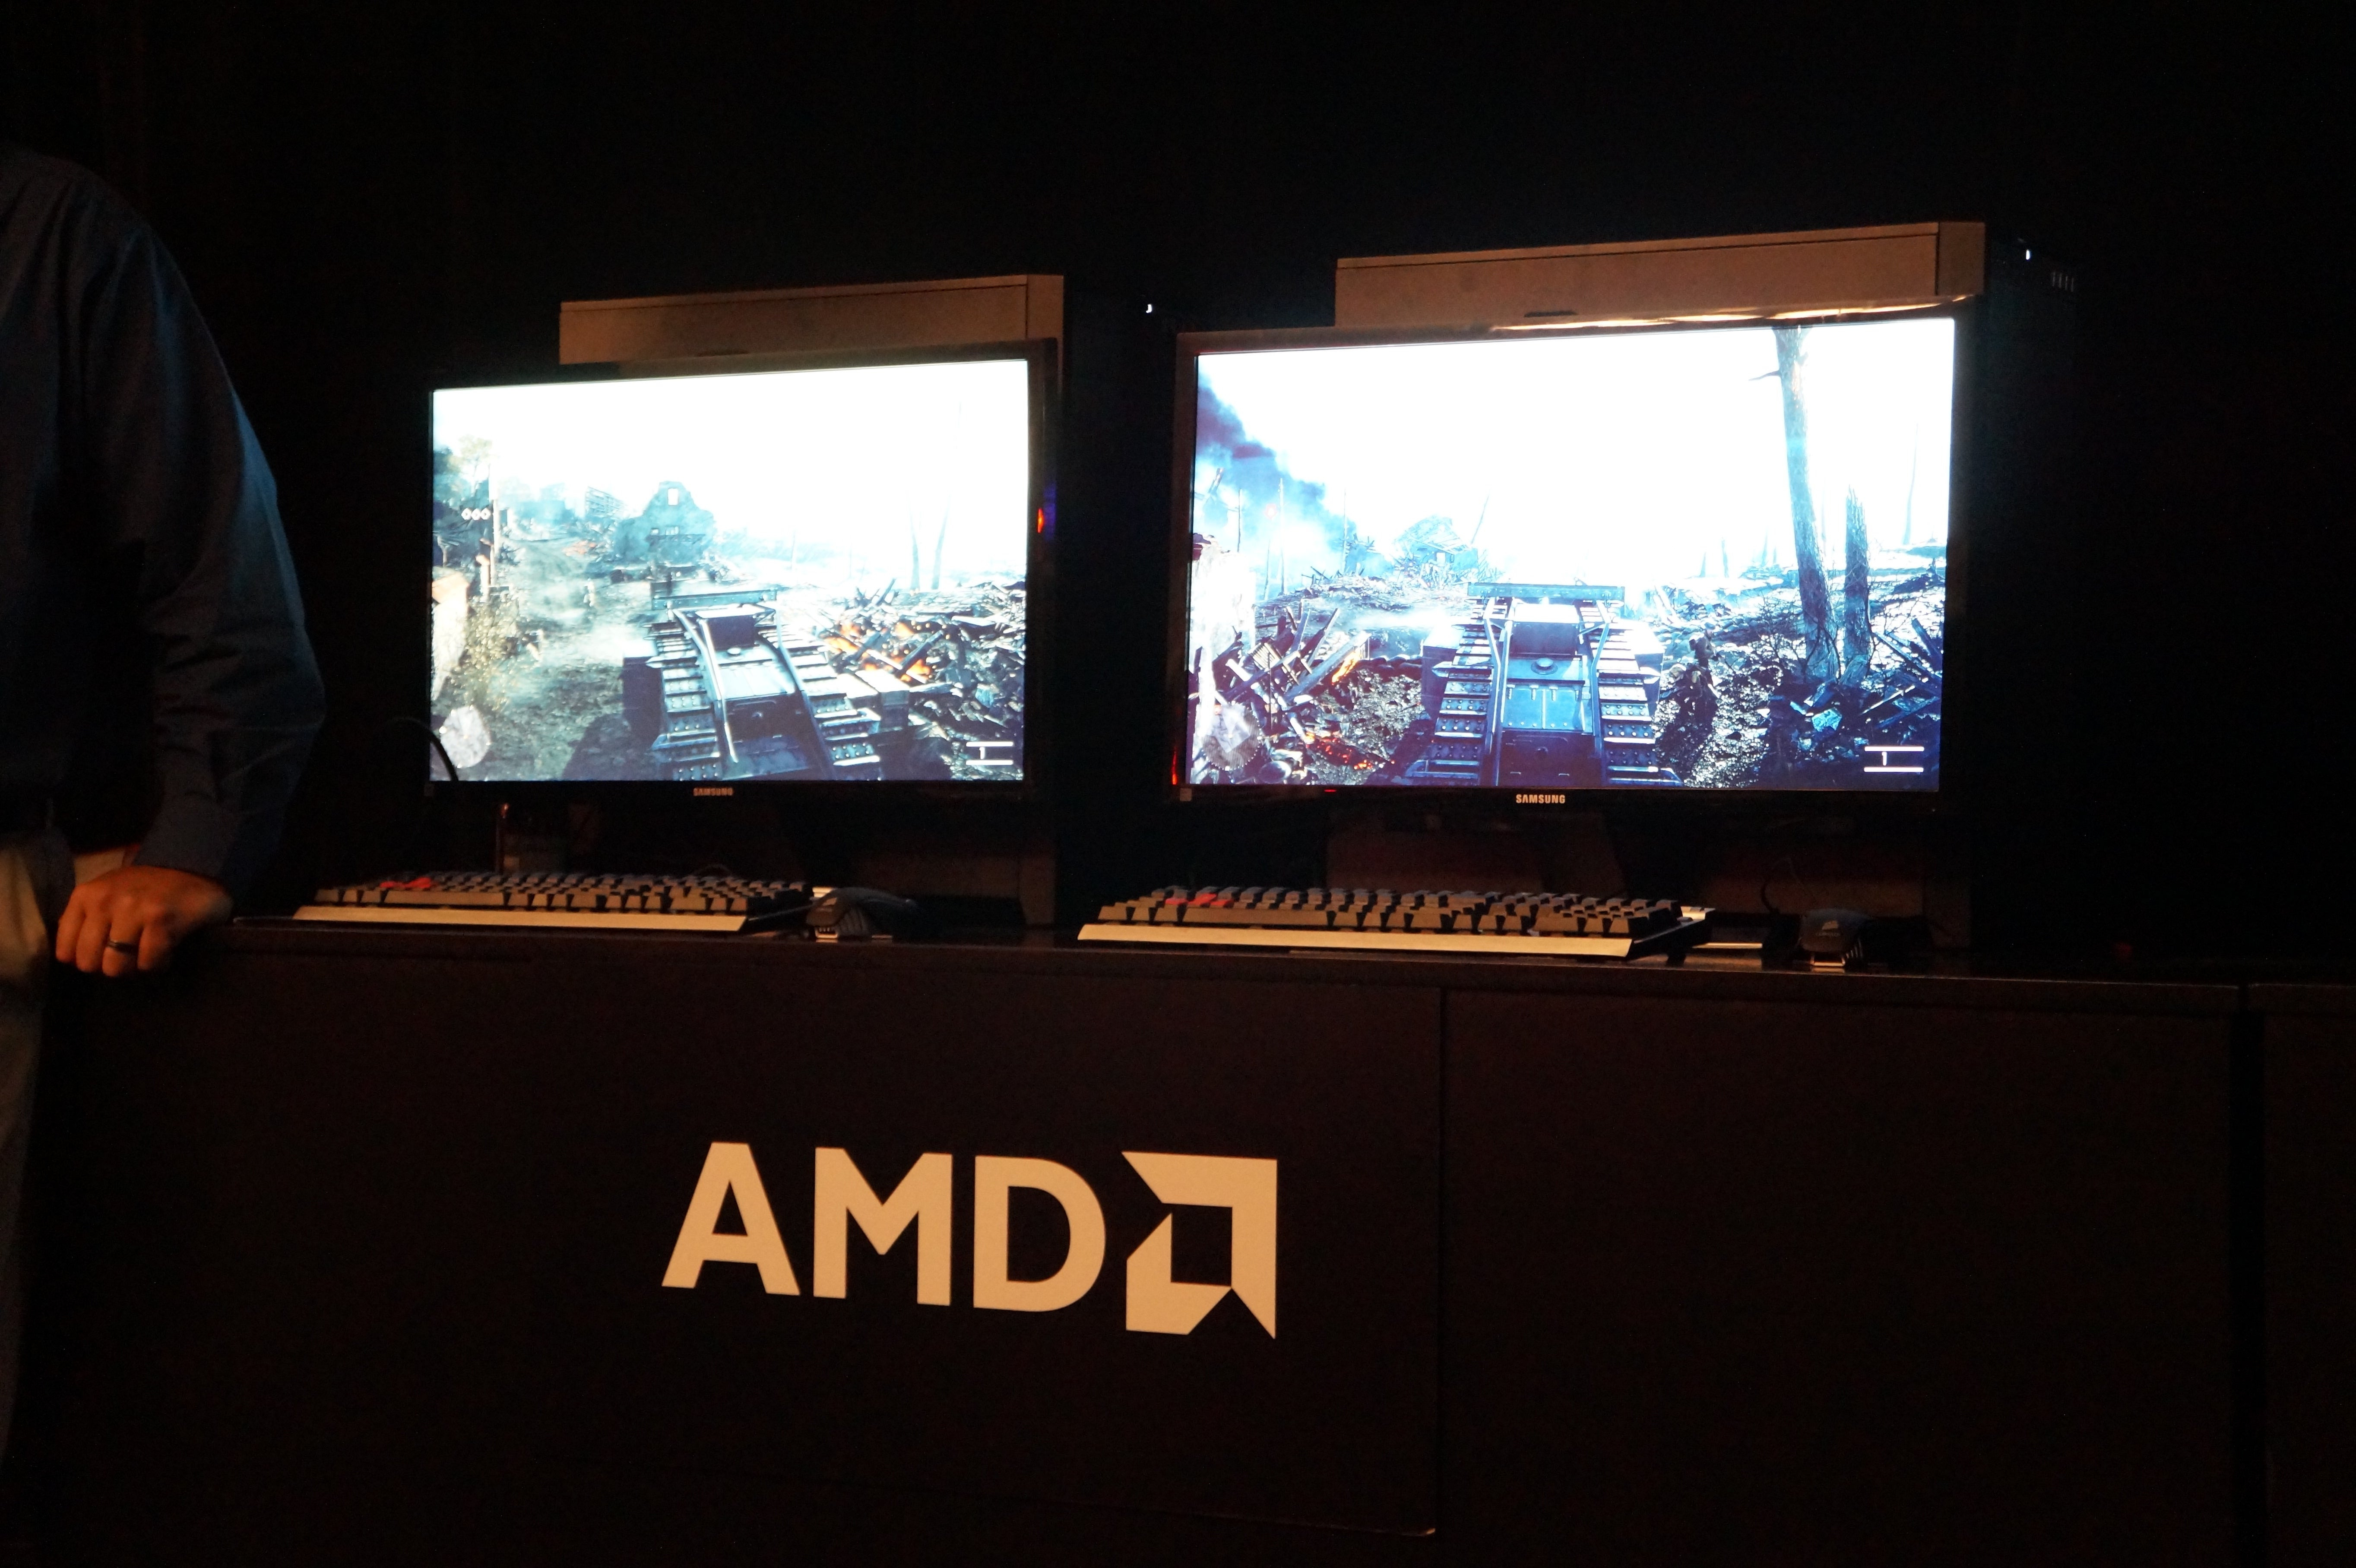 What we know about AMD's Ryzen so far   PCWorld